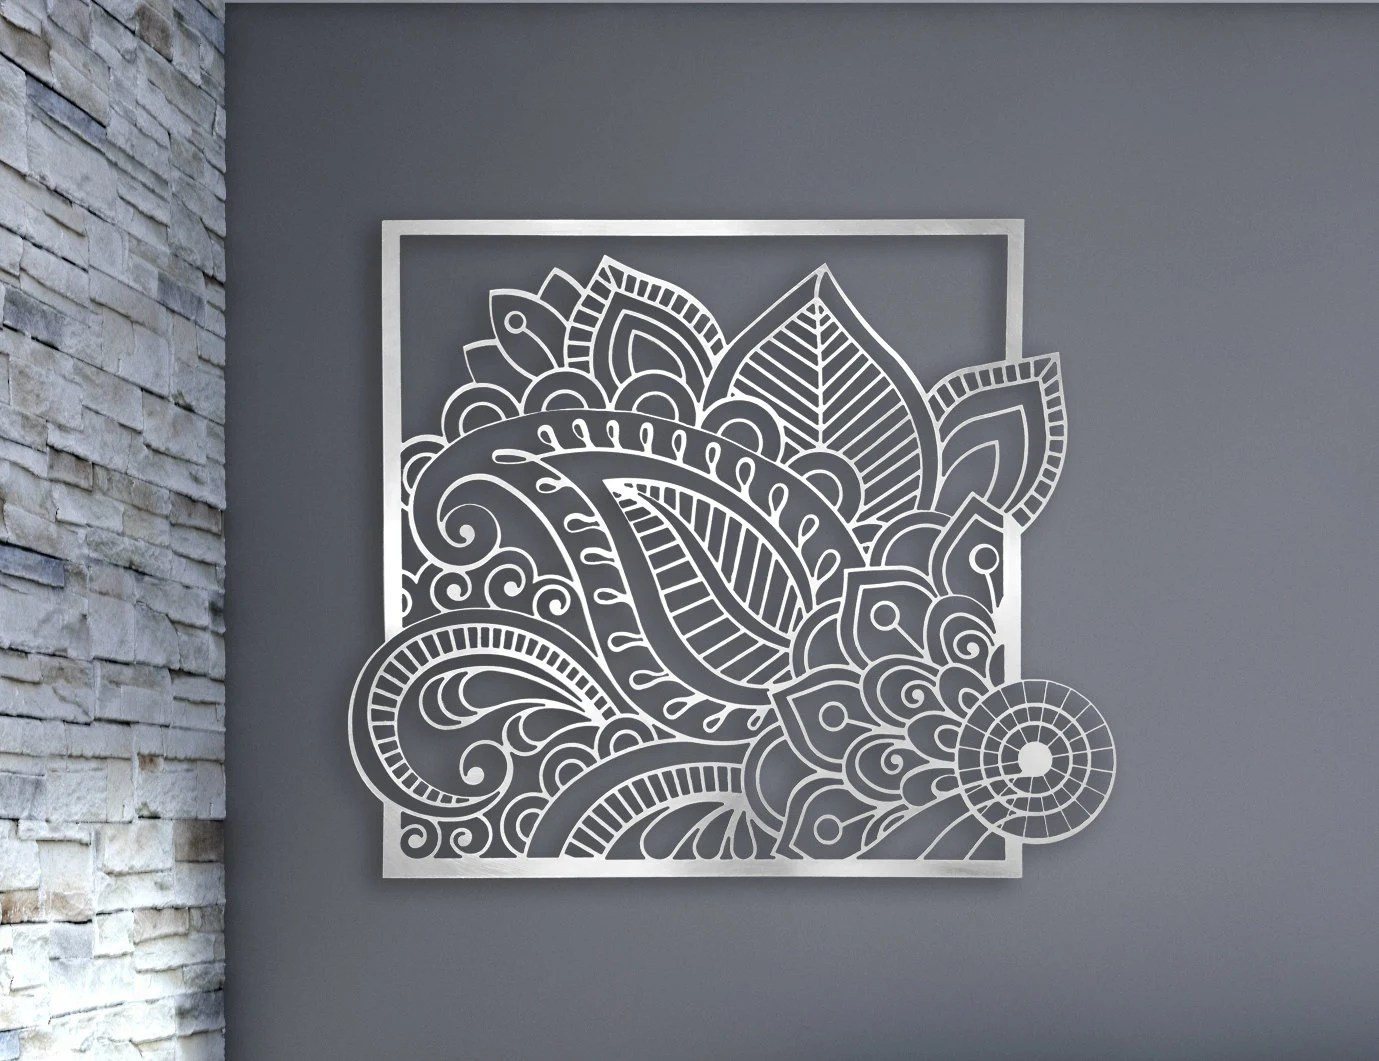 Laser Cut Metal Decorative Wall Art Panel Sculpture for Home